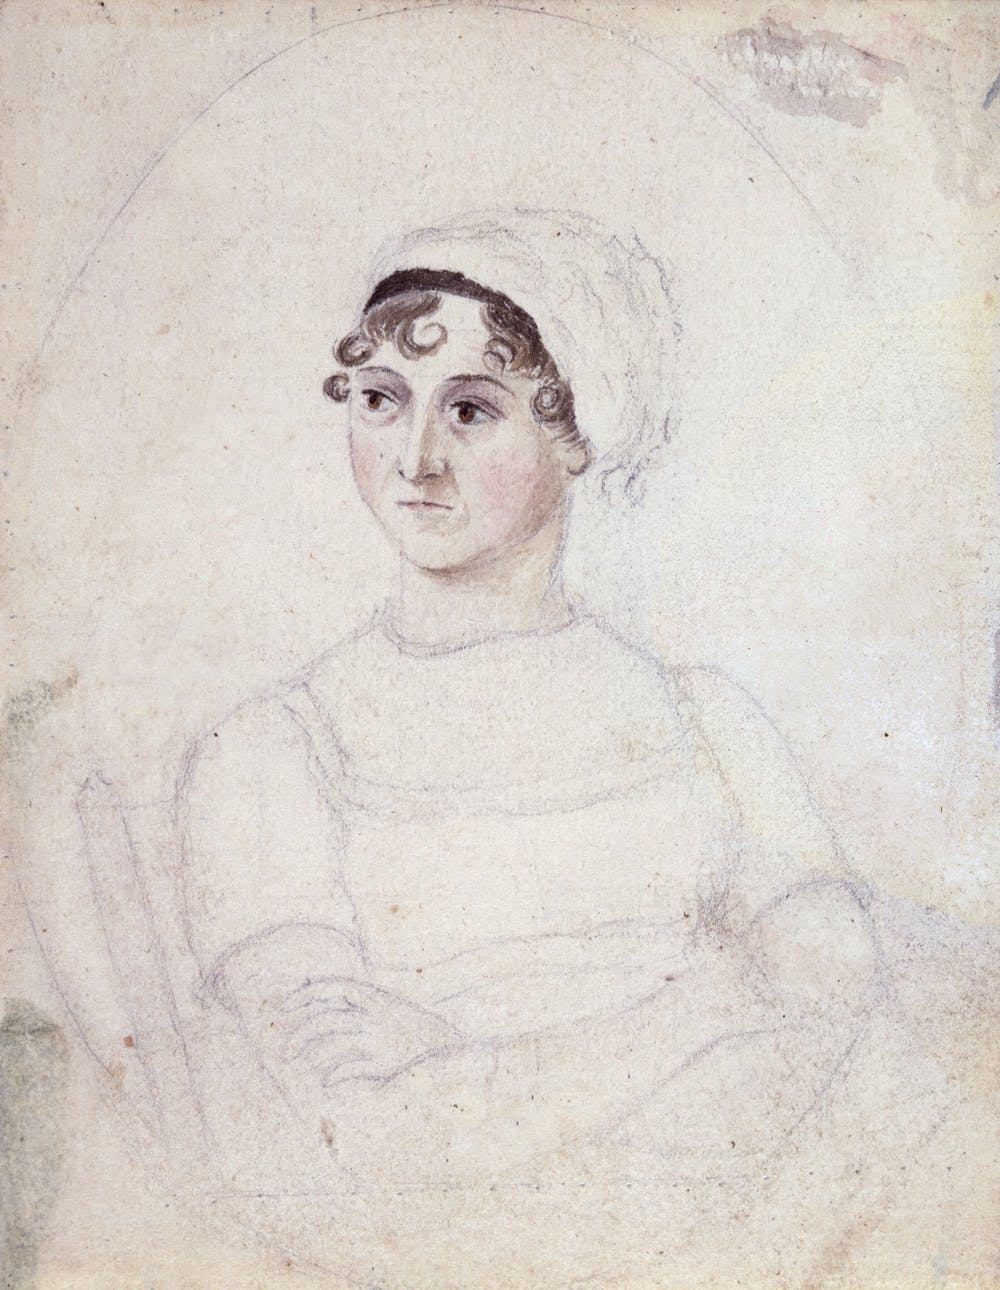 Research Proposal Essay Topics Cassandra Austens Portrait Of Her Sister Jane Circa  Wikimedia  Commons How To Stay Healthy Essay also Help With Business Plan In South Africa Friday Essay The Revolutionary Vision Of Jane Austen Examples Of Thesis Statements For Narrative Essays